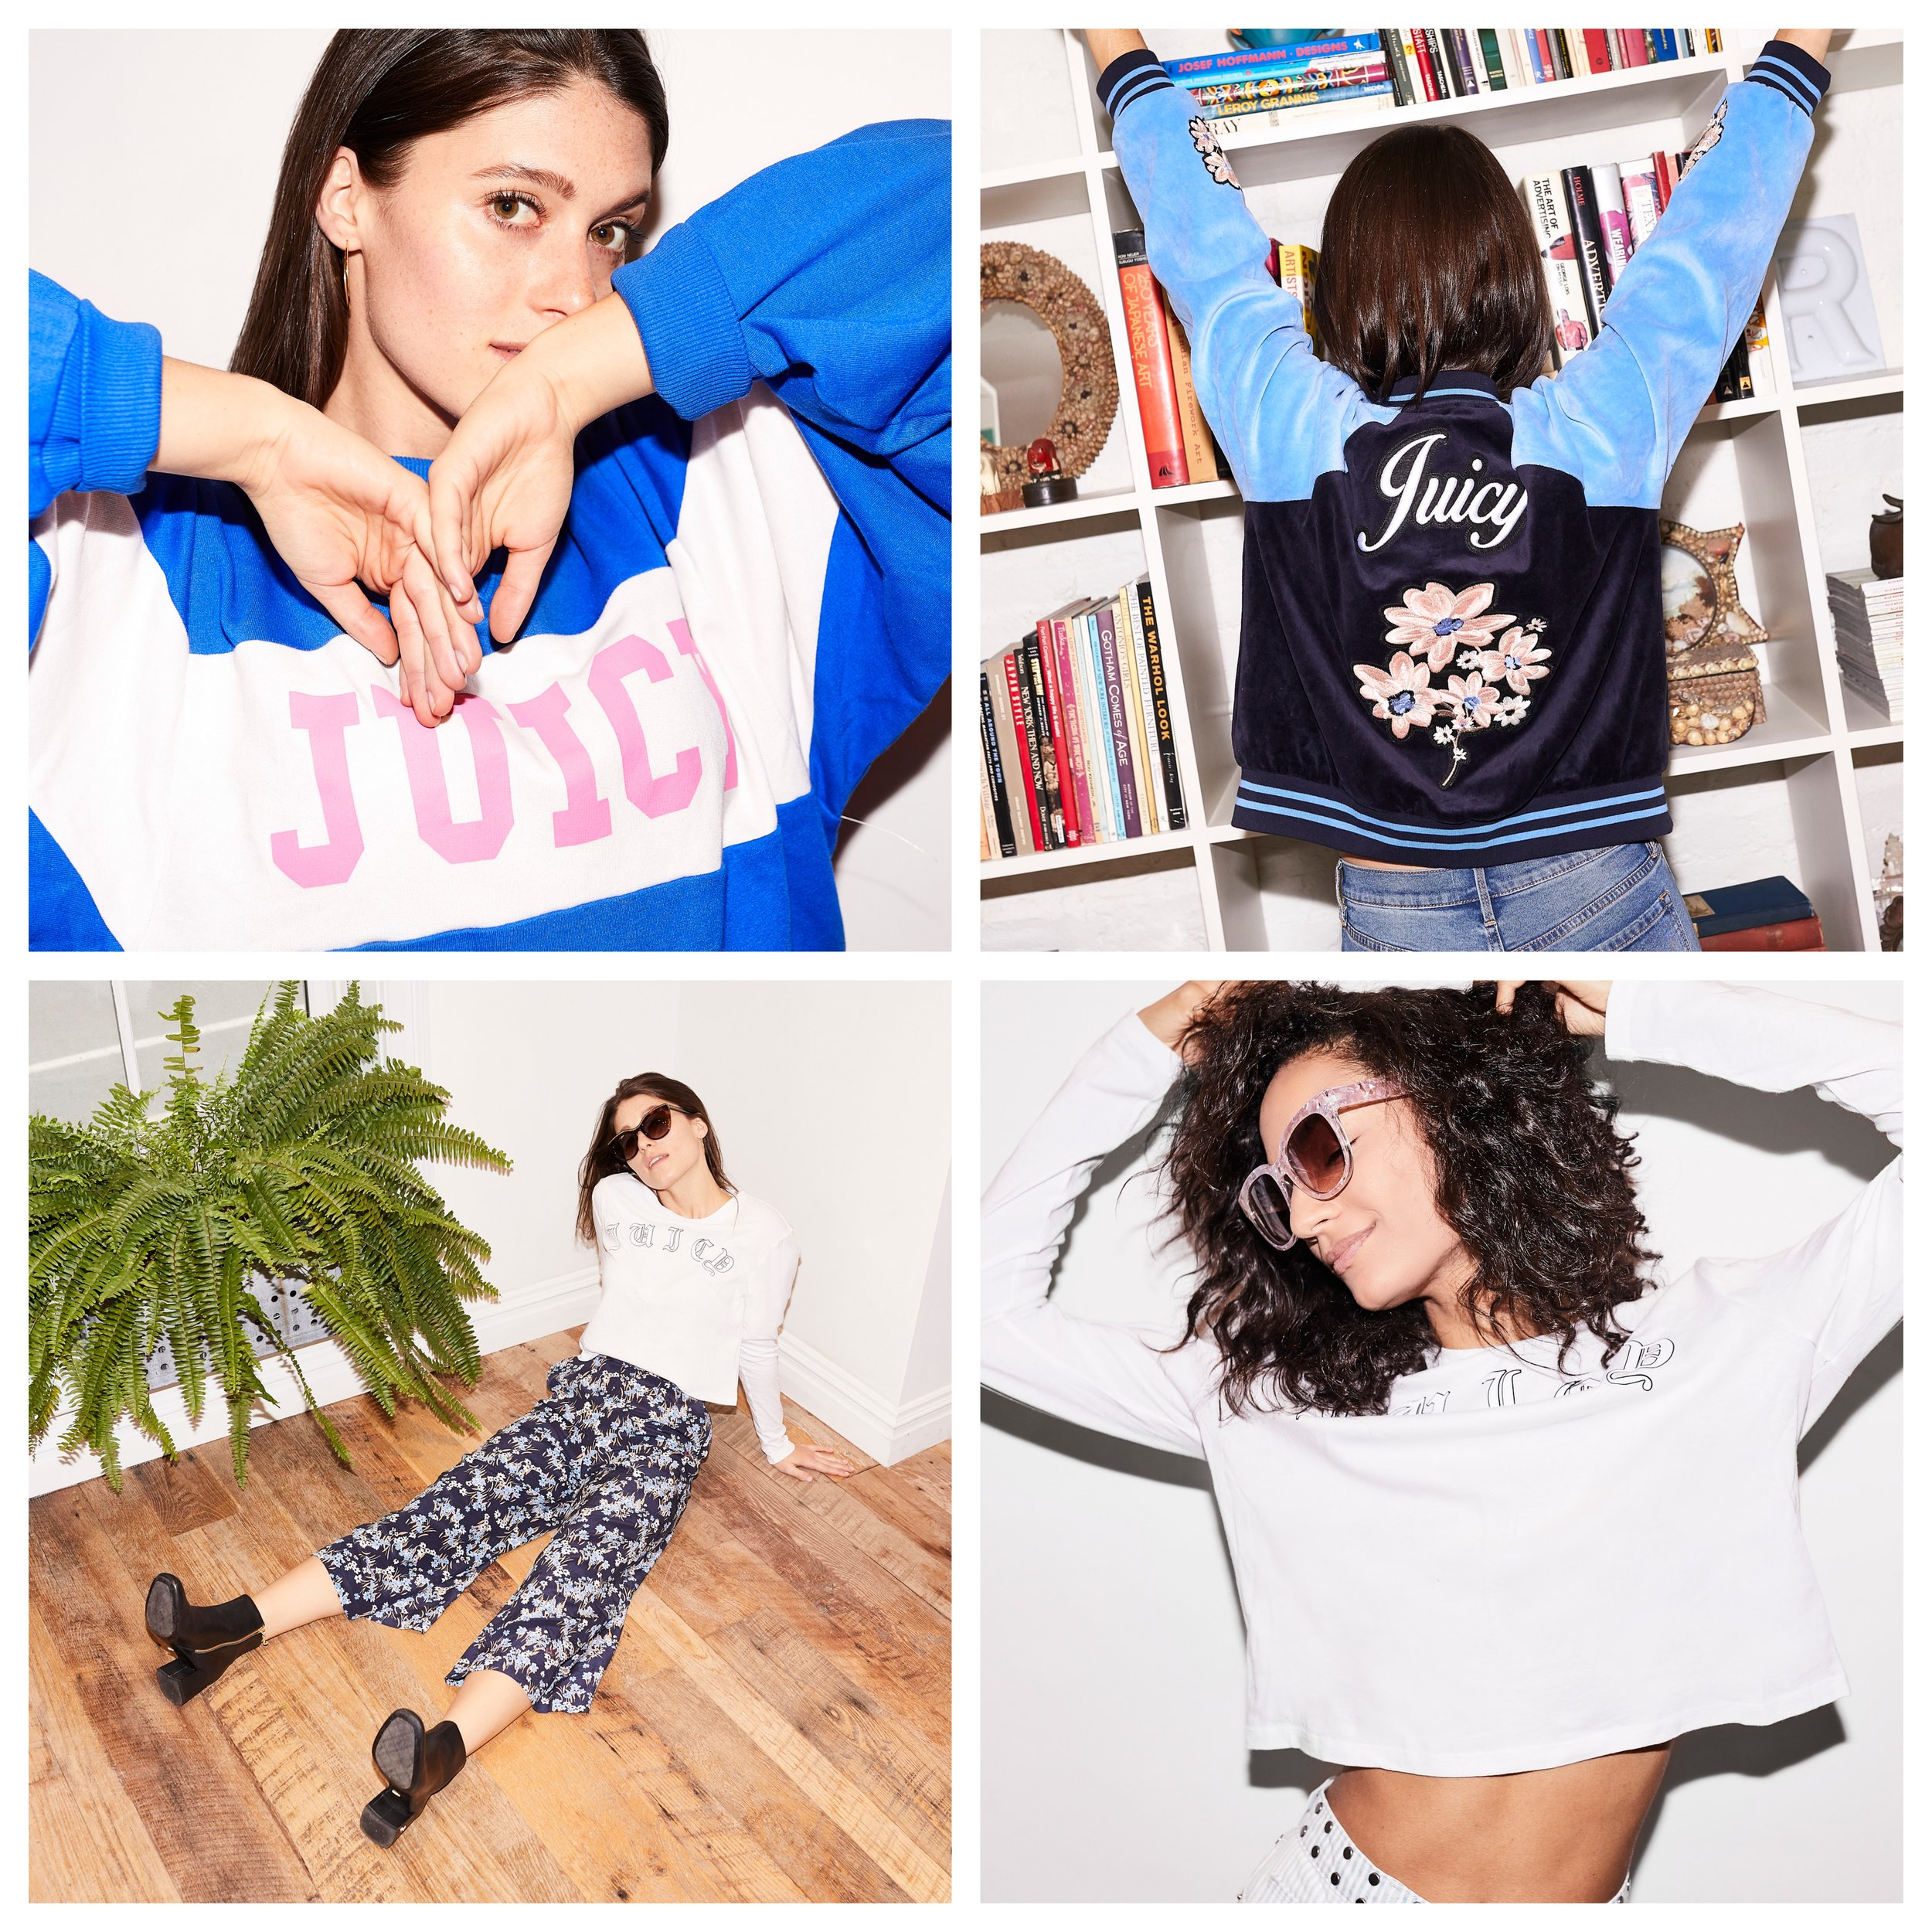 Juicy Couture social media campaign